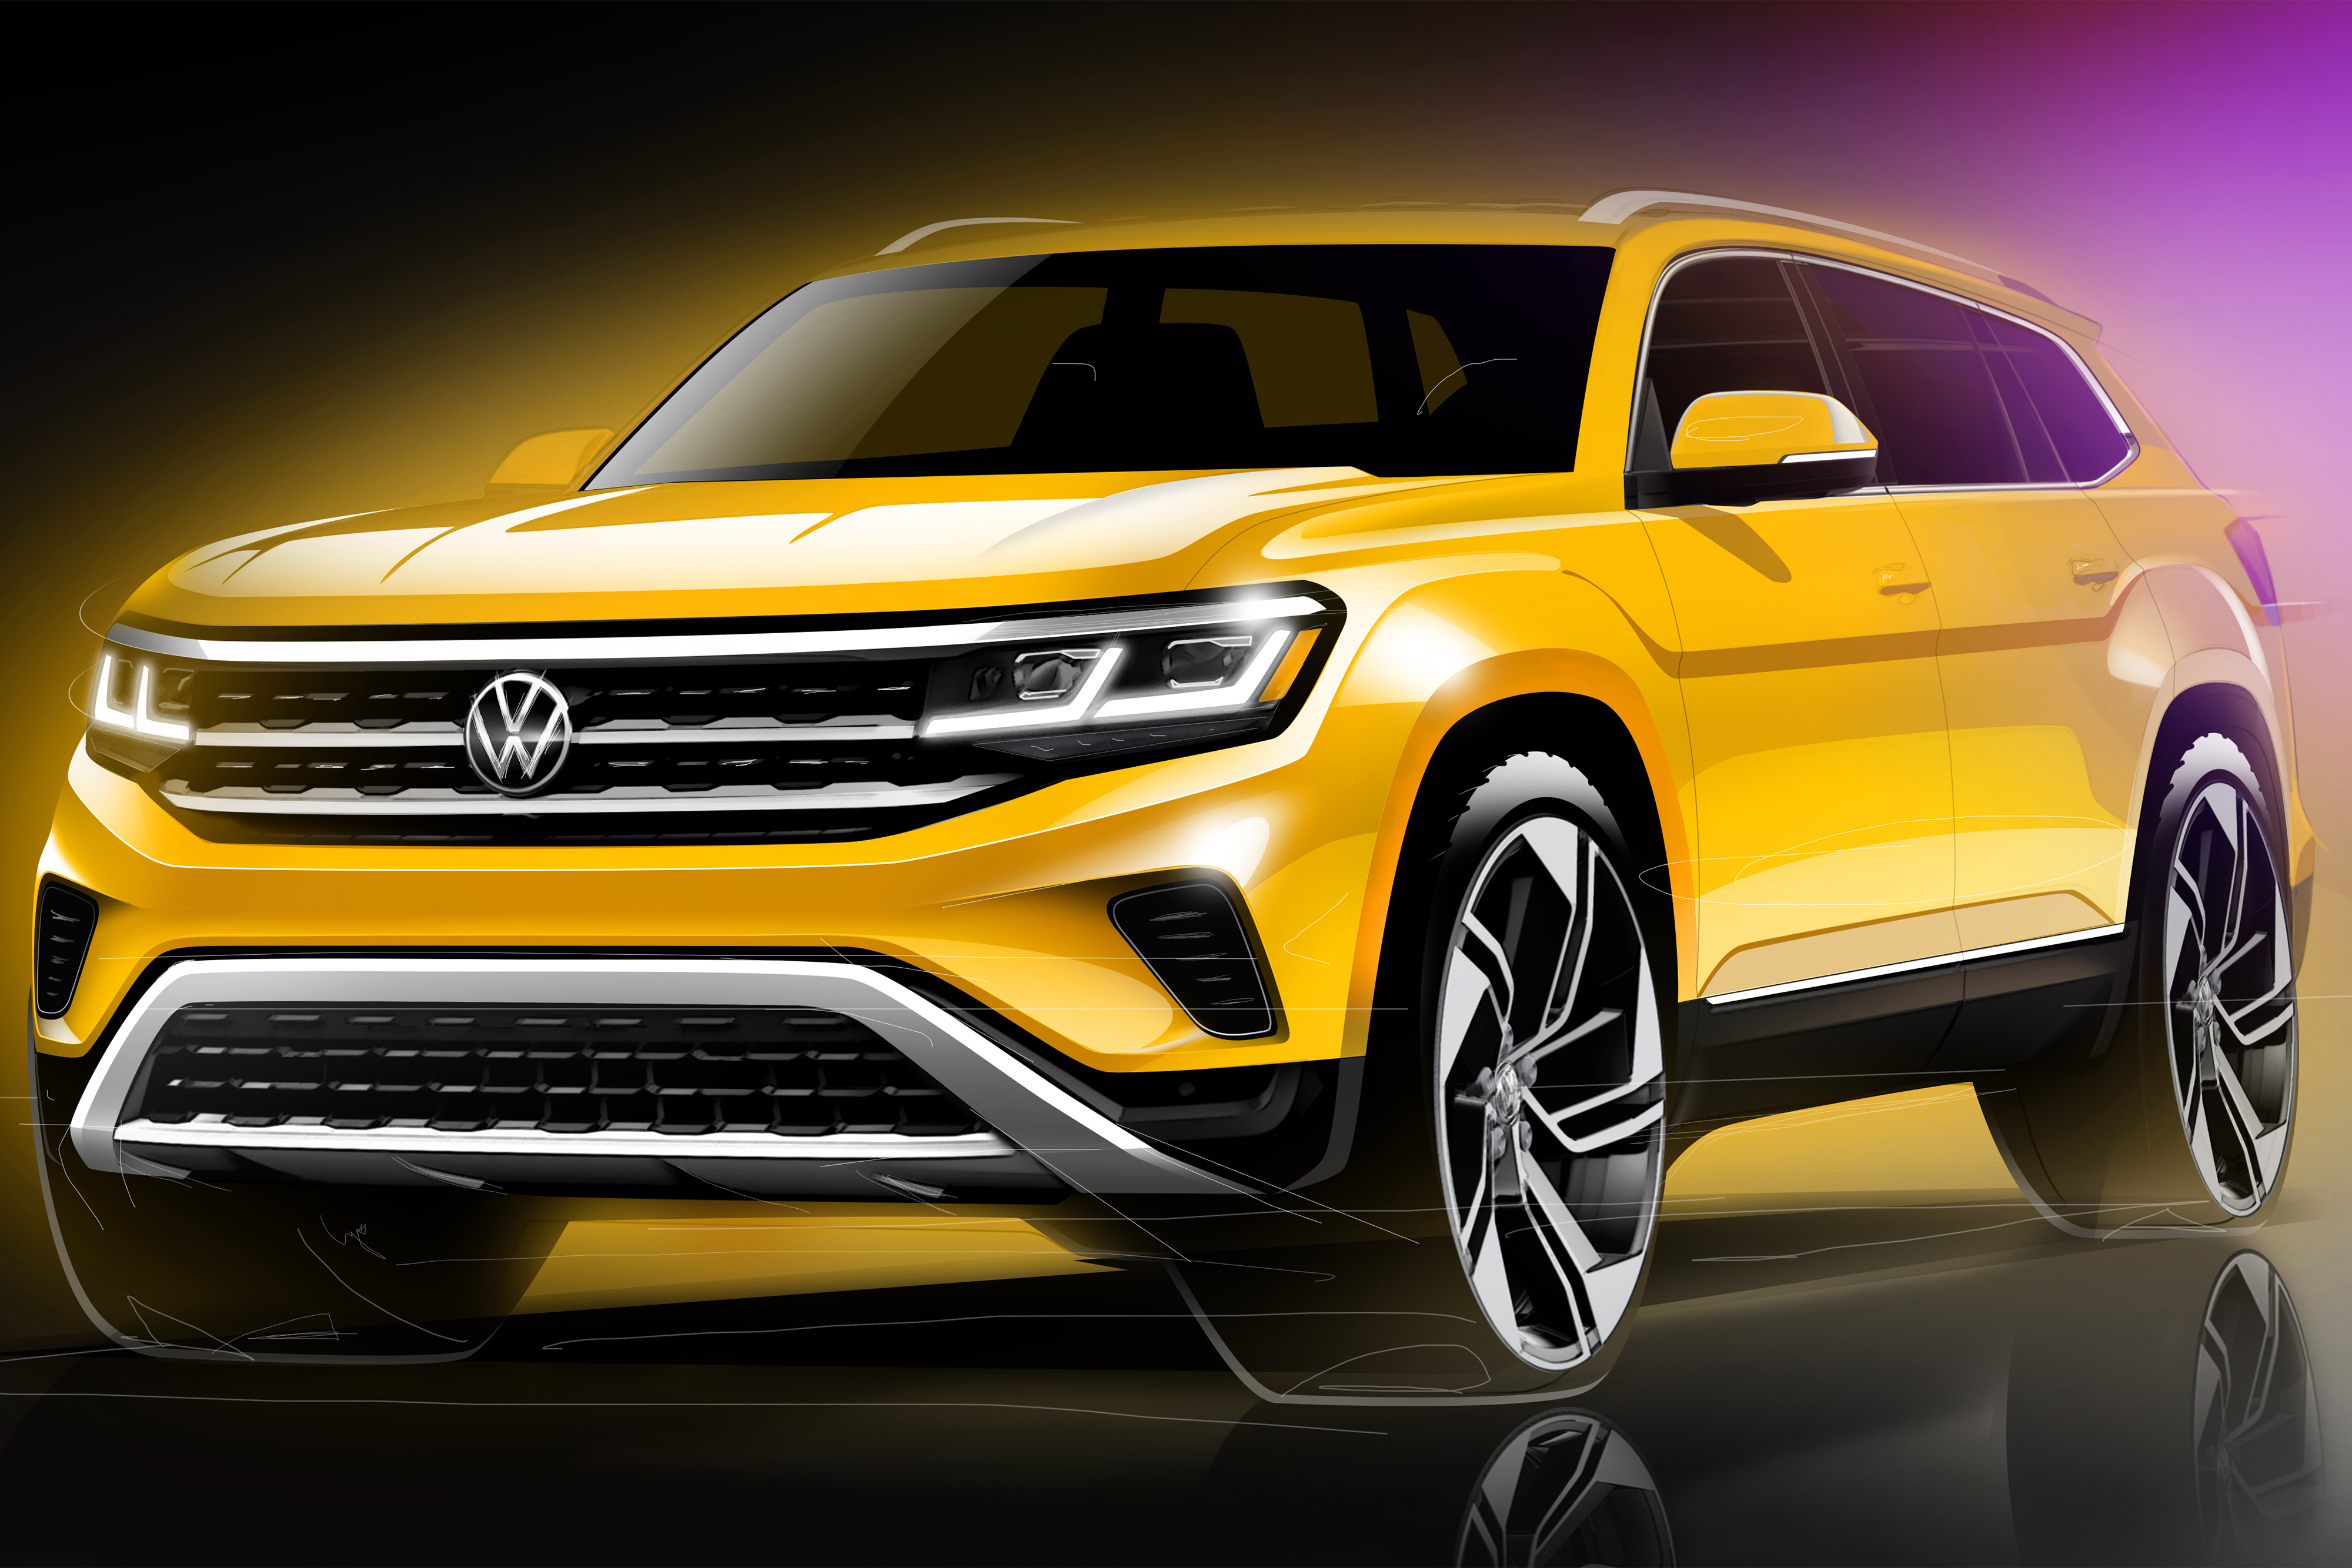 2021 Volkswagen Atlas Gets Cross Sportified Refresh